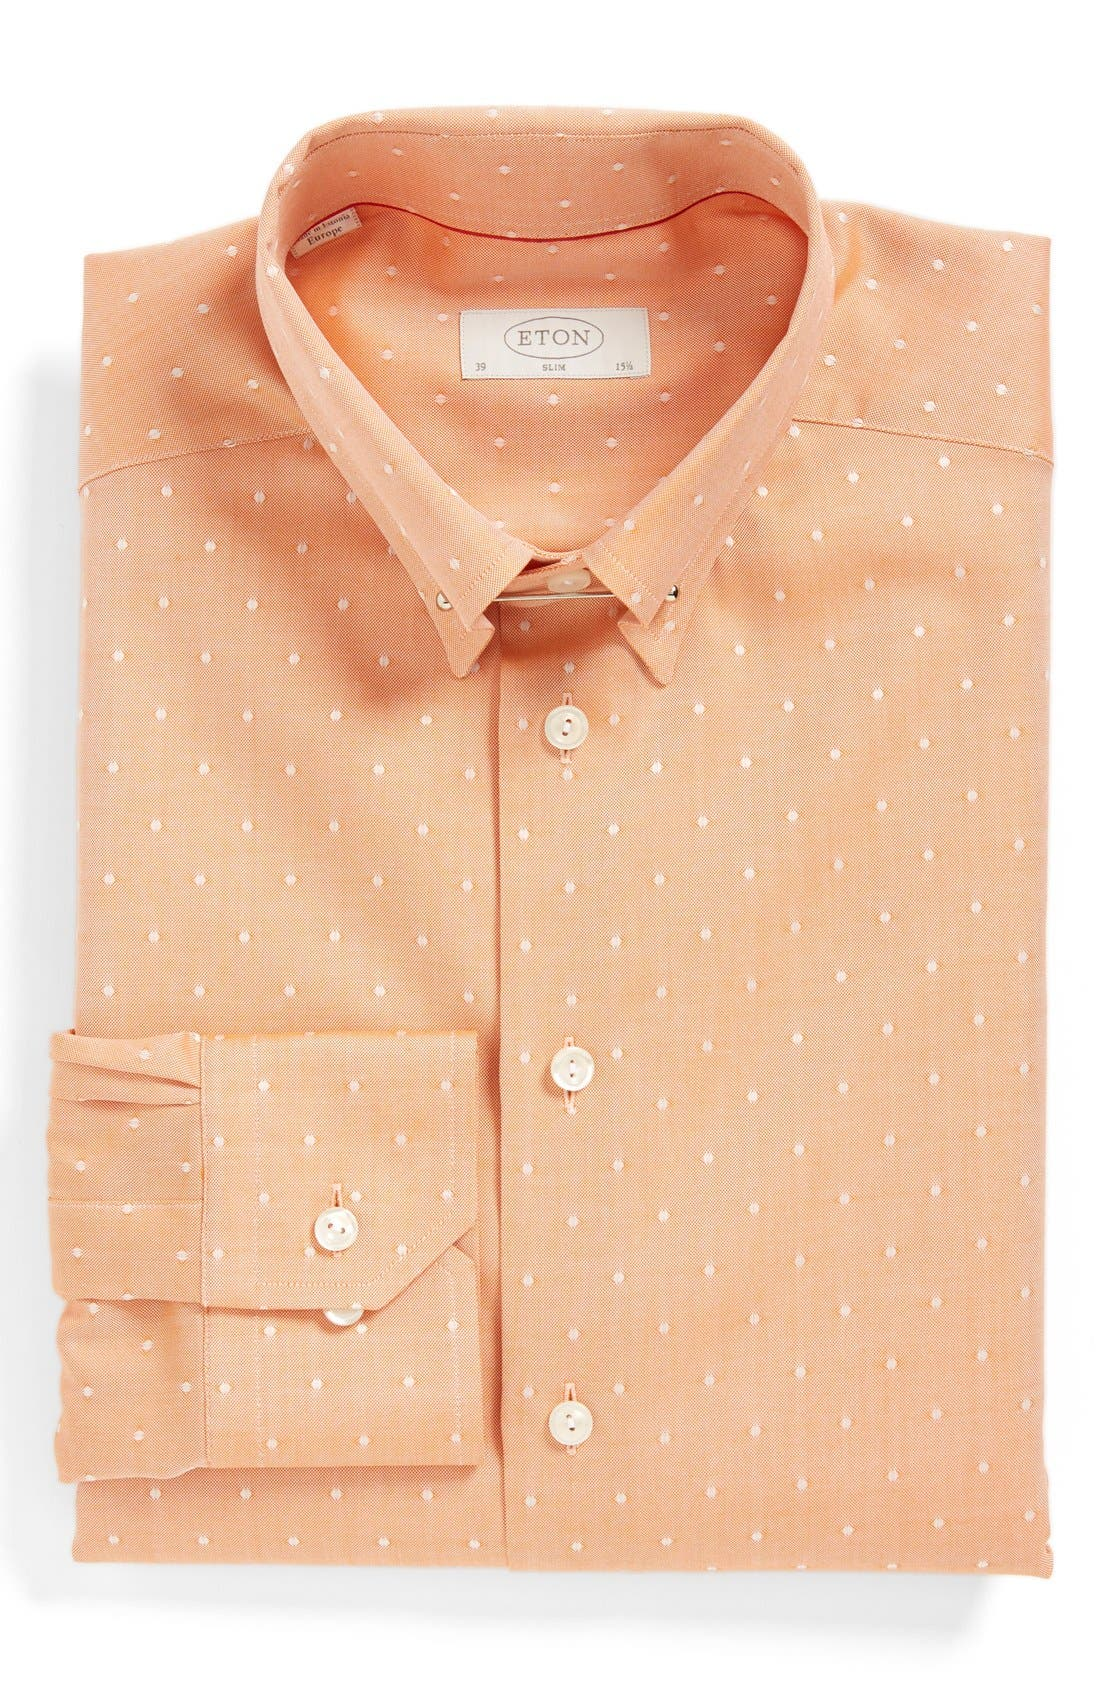 Alternate Image 1 Selected - Eton Slim Fit Dot Dress Shirt